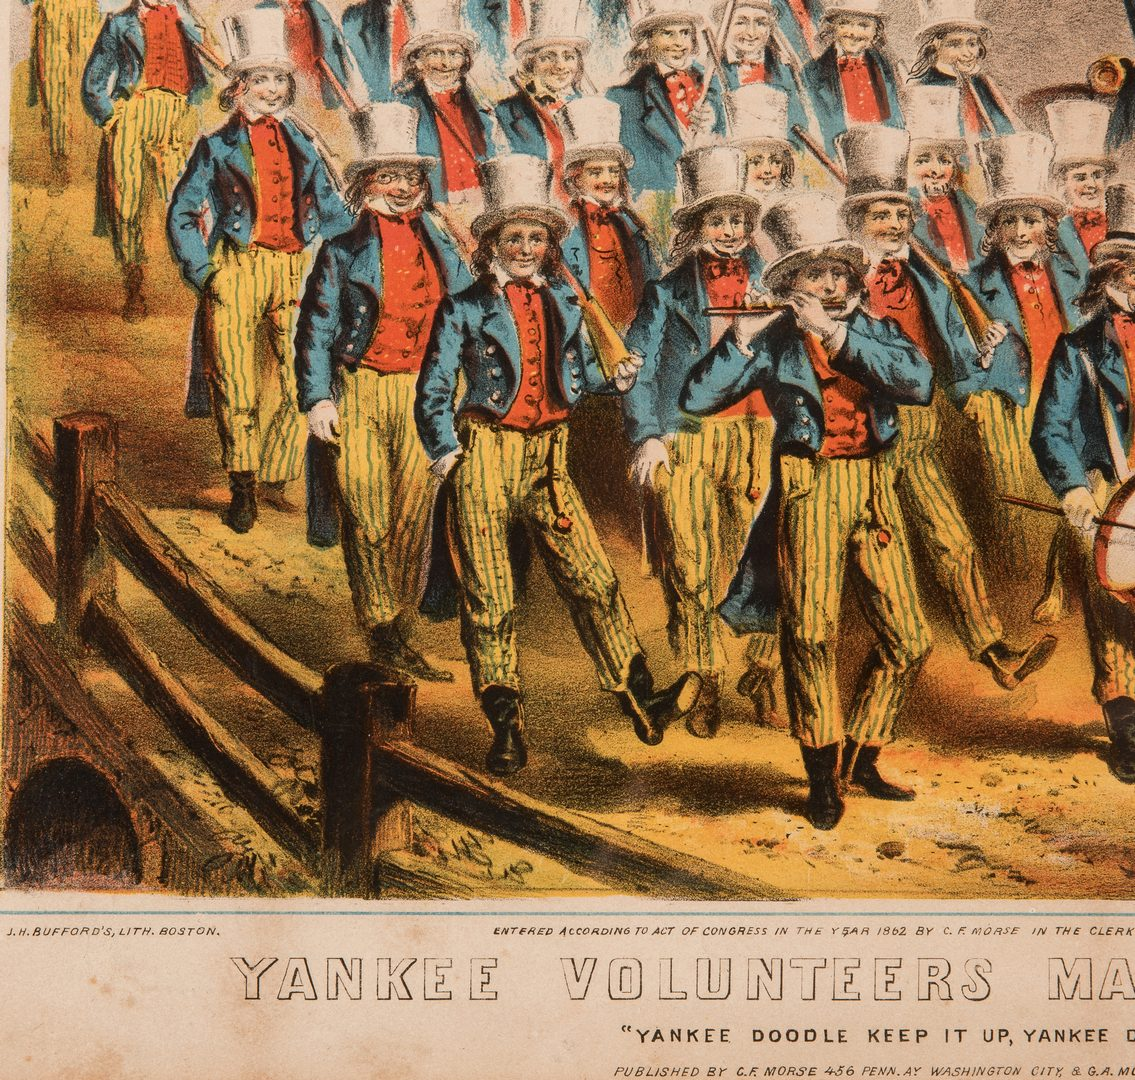 Lot 516: Chromolithographic Print, Yankee Volunteers Marching into Dixie, 1862